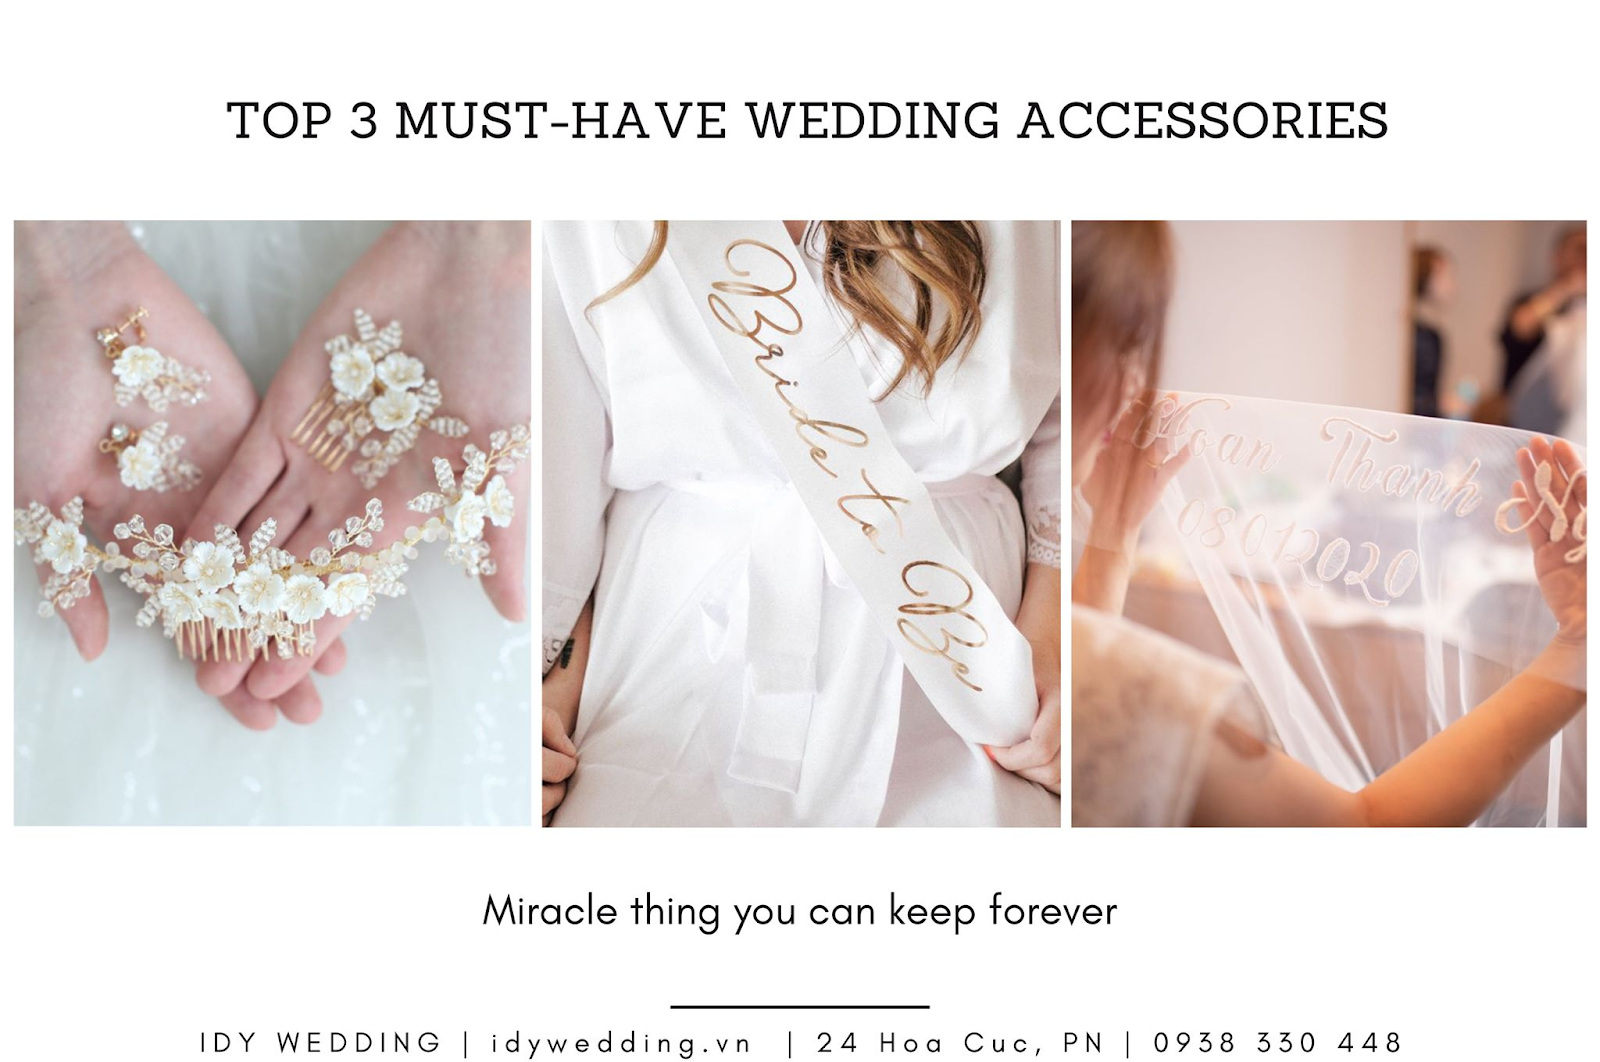 TOP 3 MUST-HAVE WEDDING ACCESSORIES